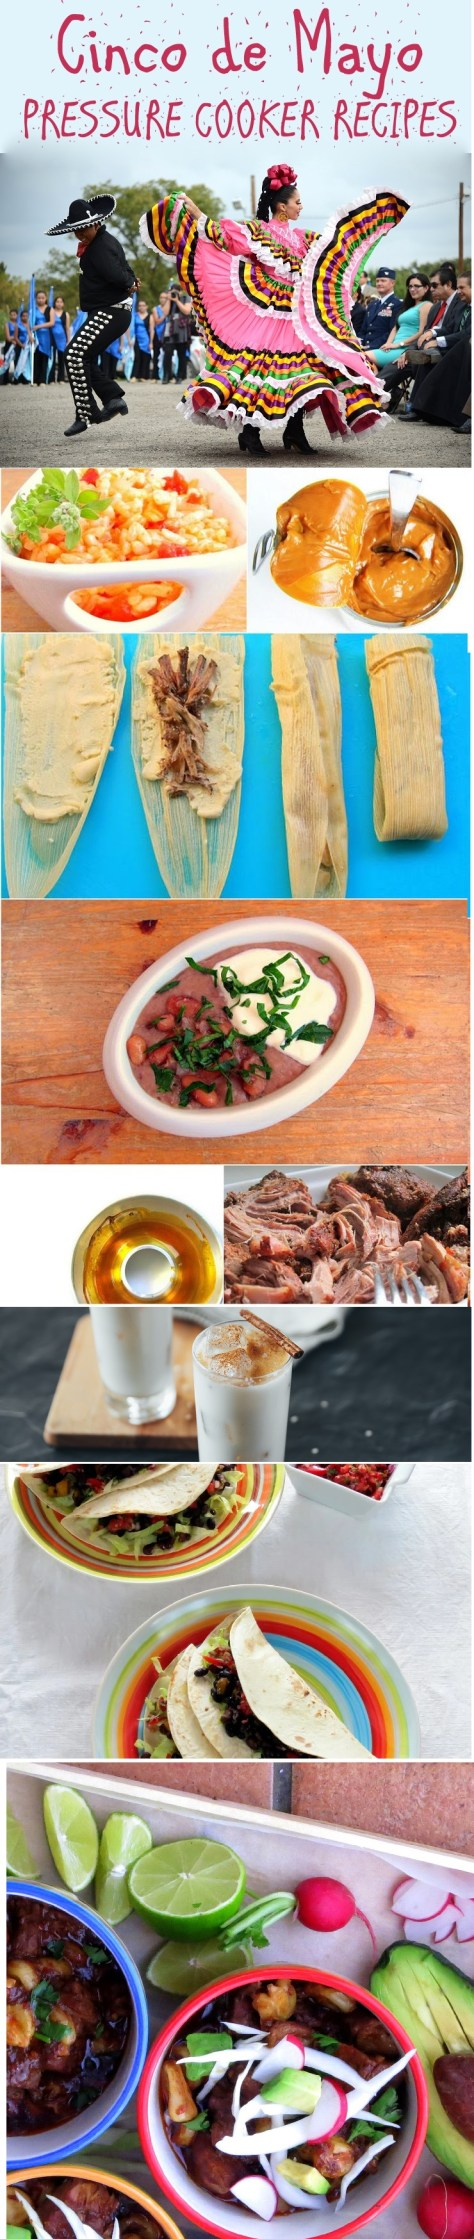 Instant Pot and Pressure Cooker Mexican Recipes - Cinco de Mayo!